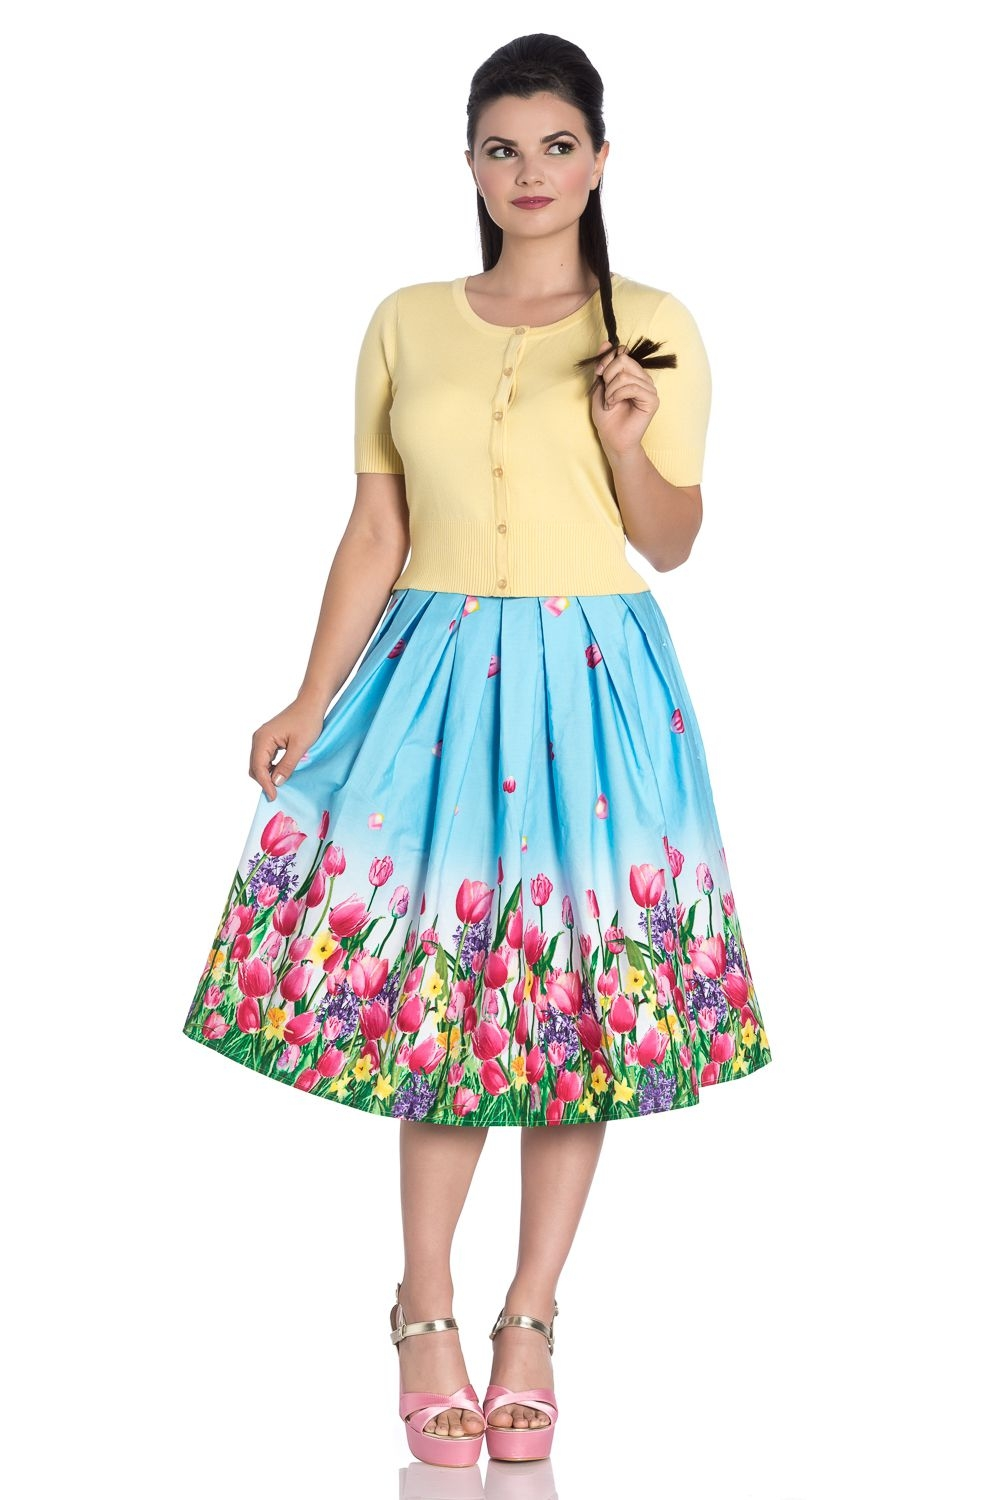 ps5479_jupe-rockabilly-pin-up-retro-50-s-swing-angelique_2